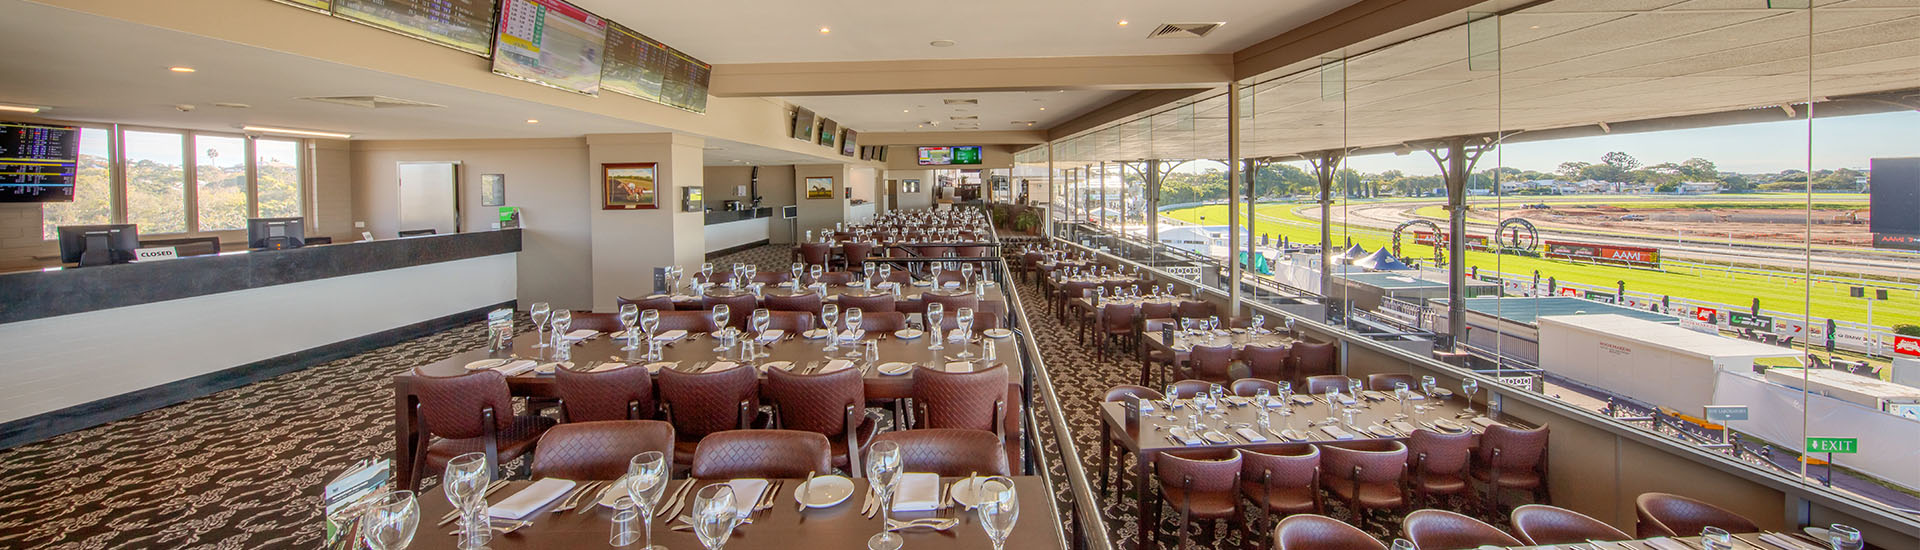 Moreton Dining Room | Brisbane Racing Club